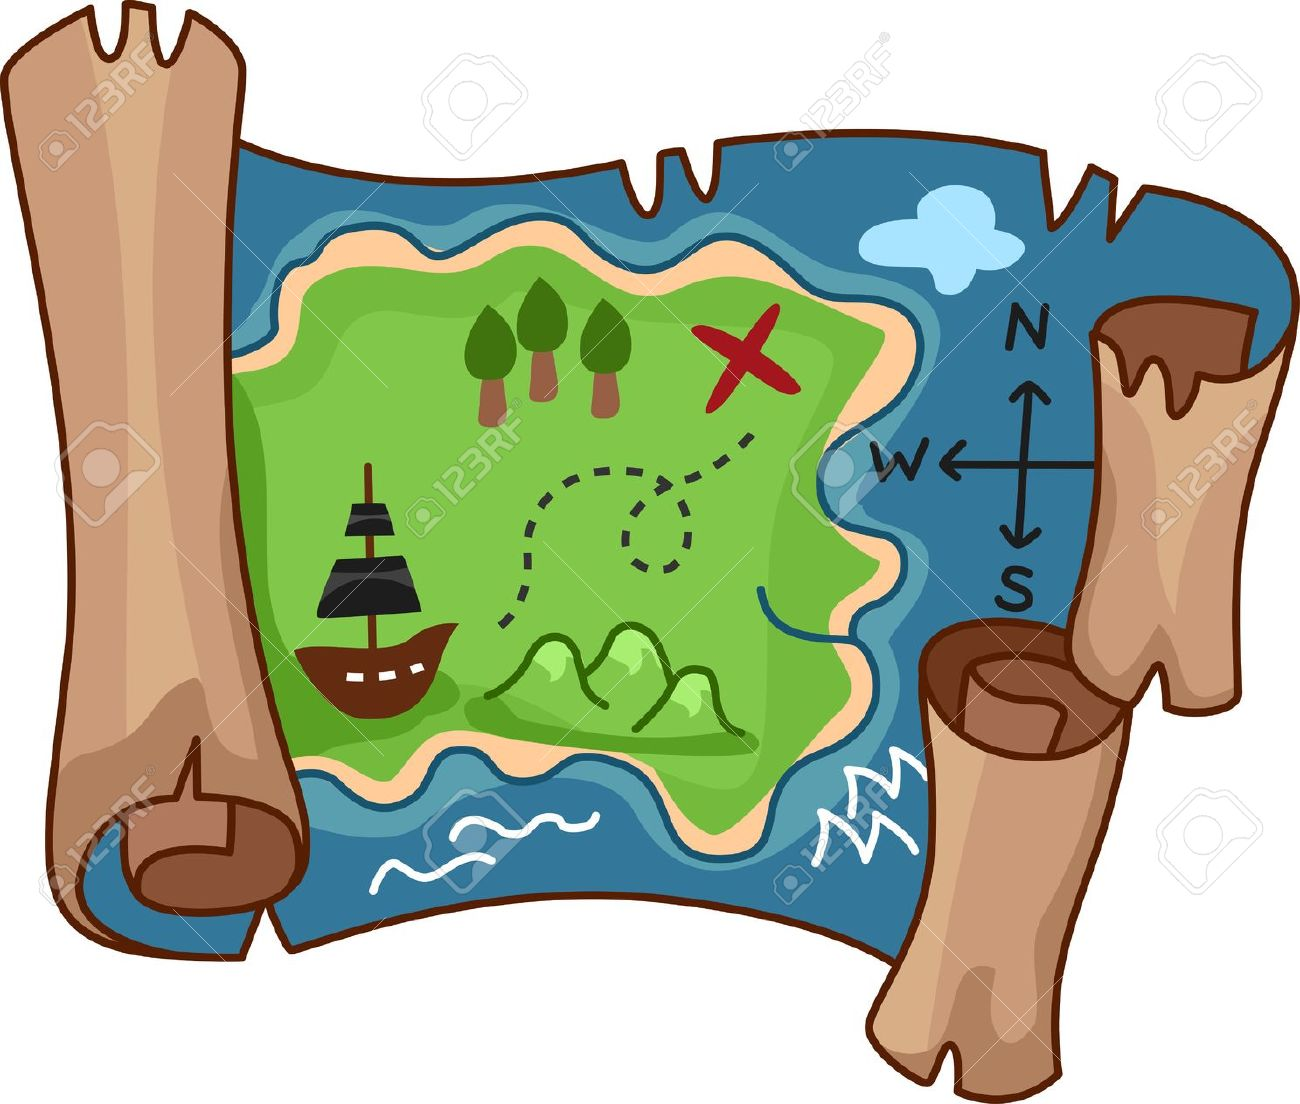 A scroll treasure map by free rf clipart - Clipartix on map symbols, map icons, map logos, map cartoons, traffic art, map of continents, map of texas,